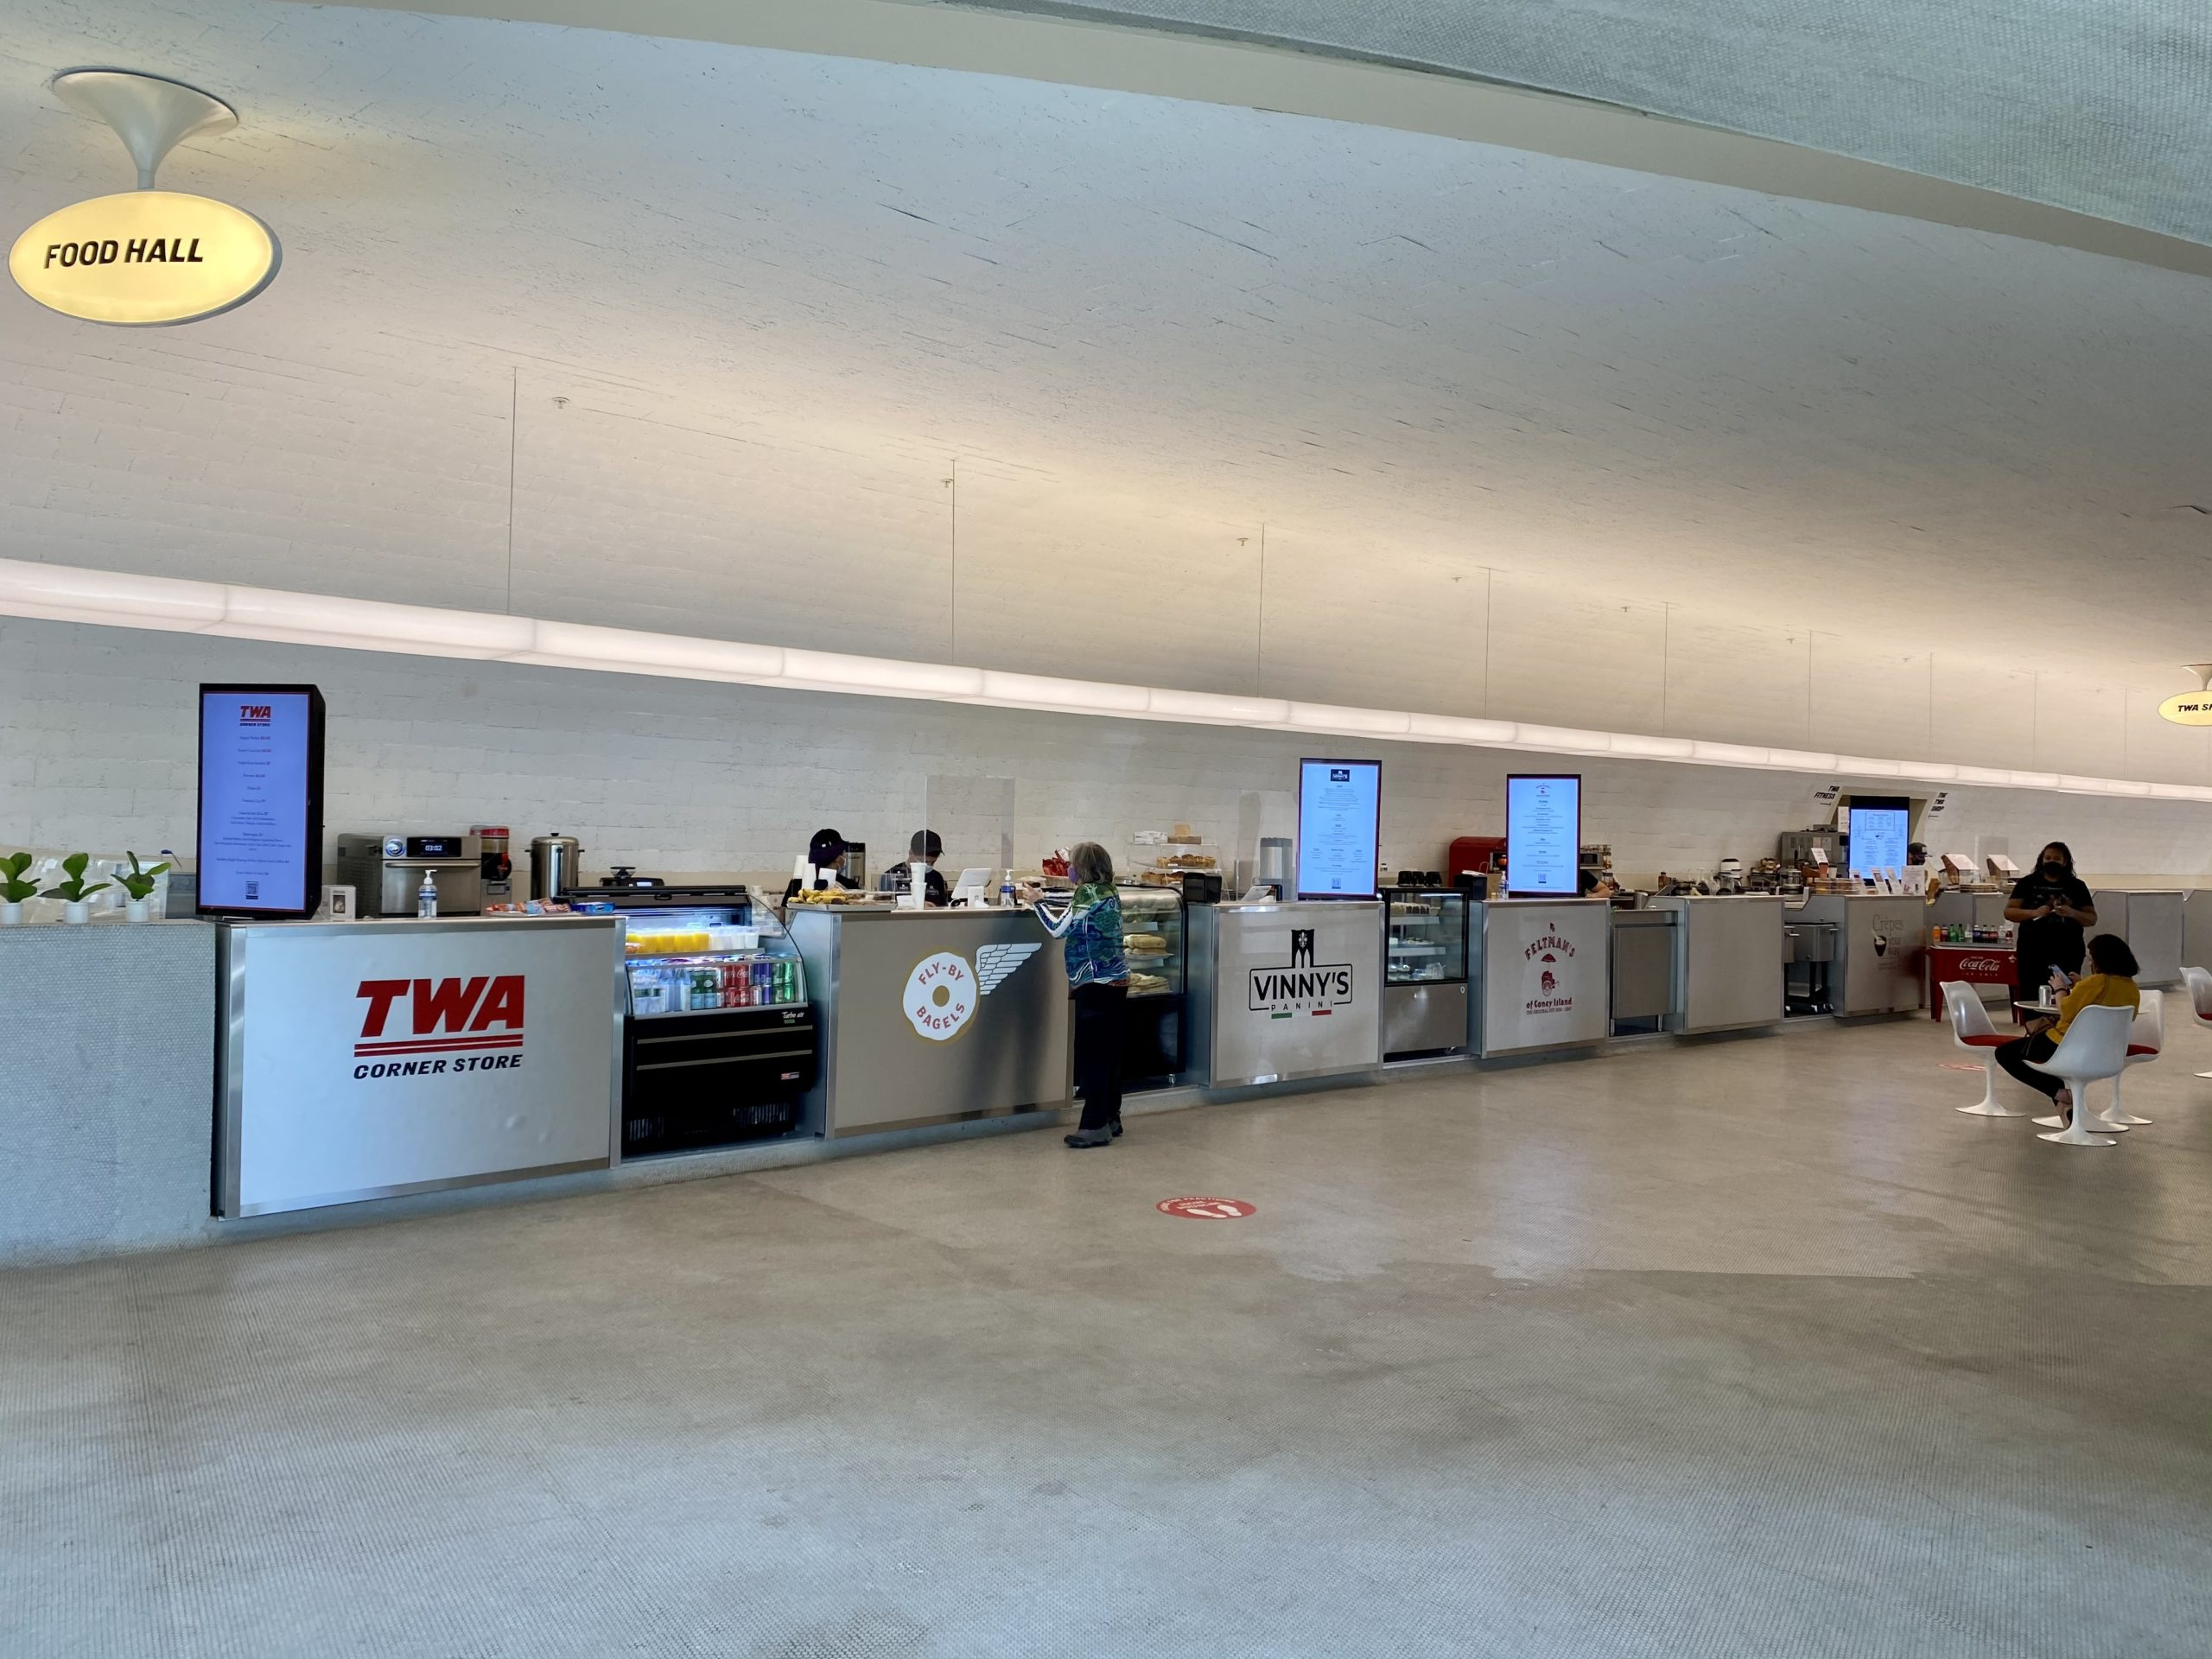 twa hotel food hall